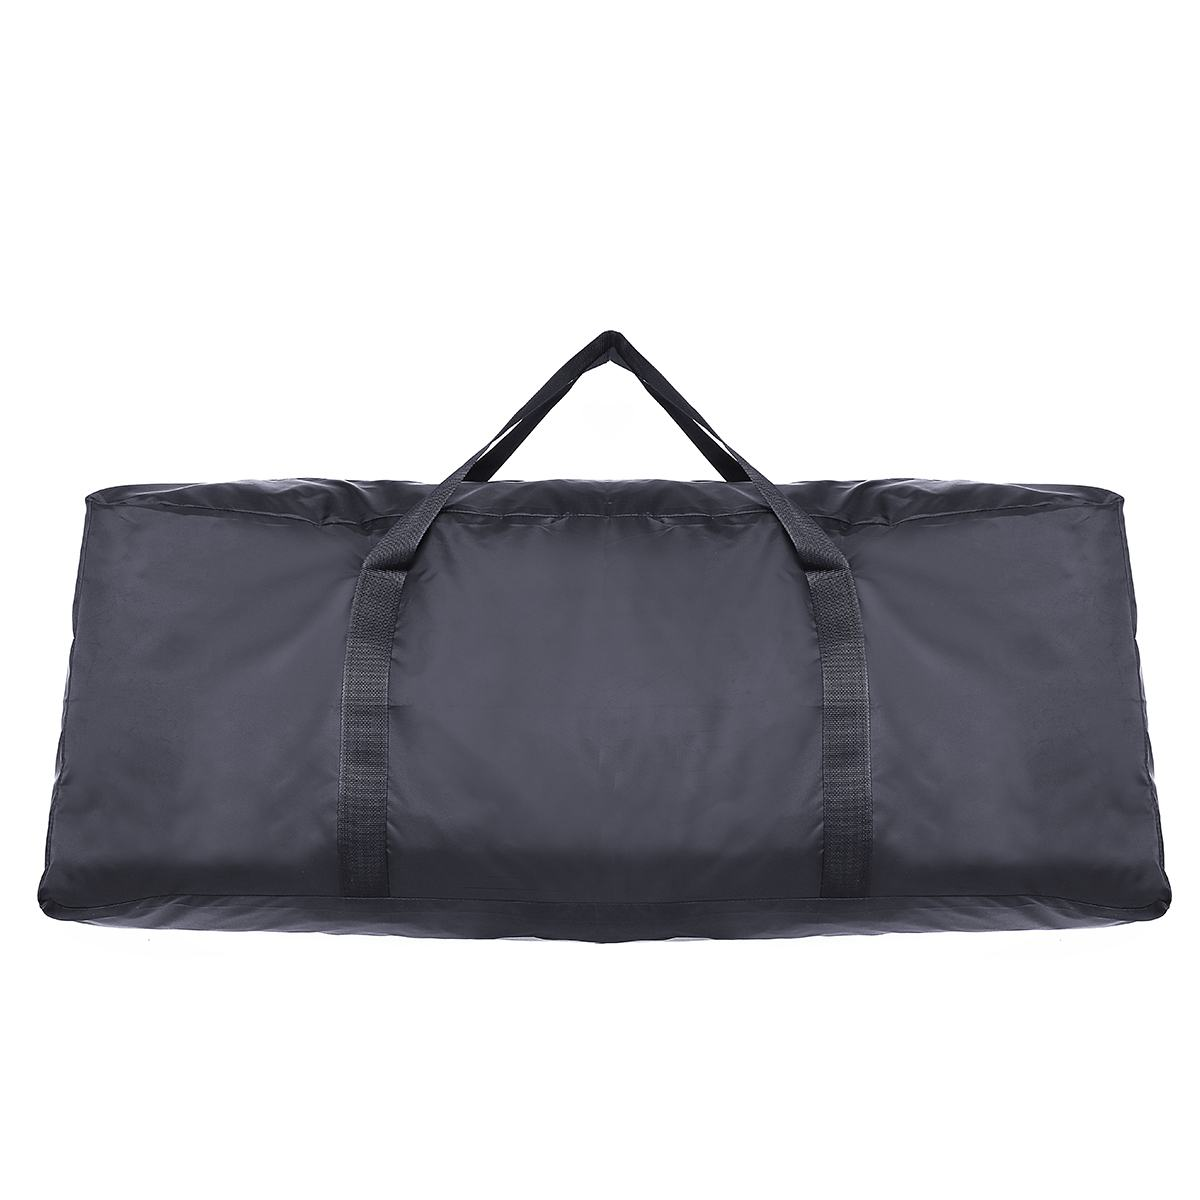 Waterproof Storage Carry Bag For Xiaomi M365 Ninebot ES1 ES2 Electric Scooter Motorcycle Bags Luggage